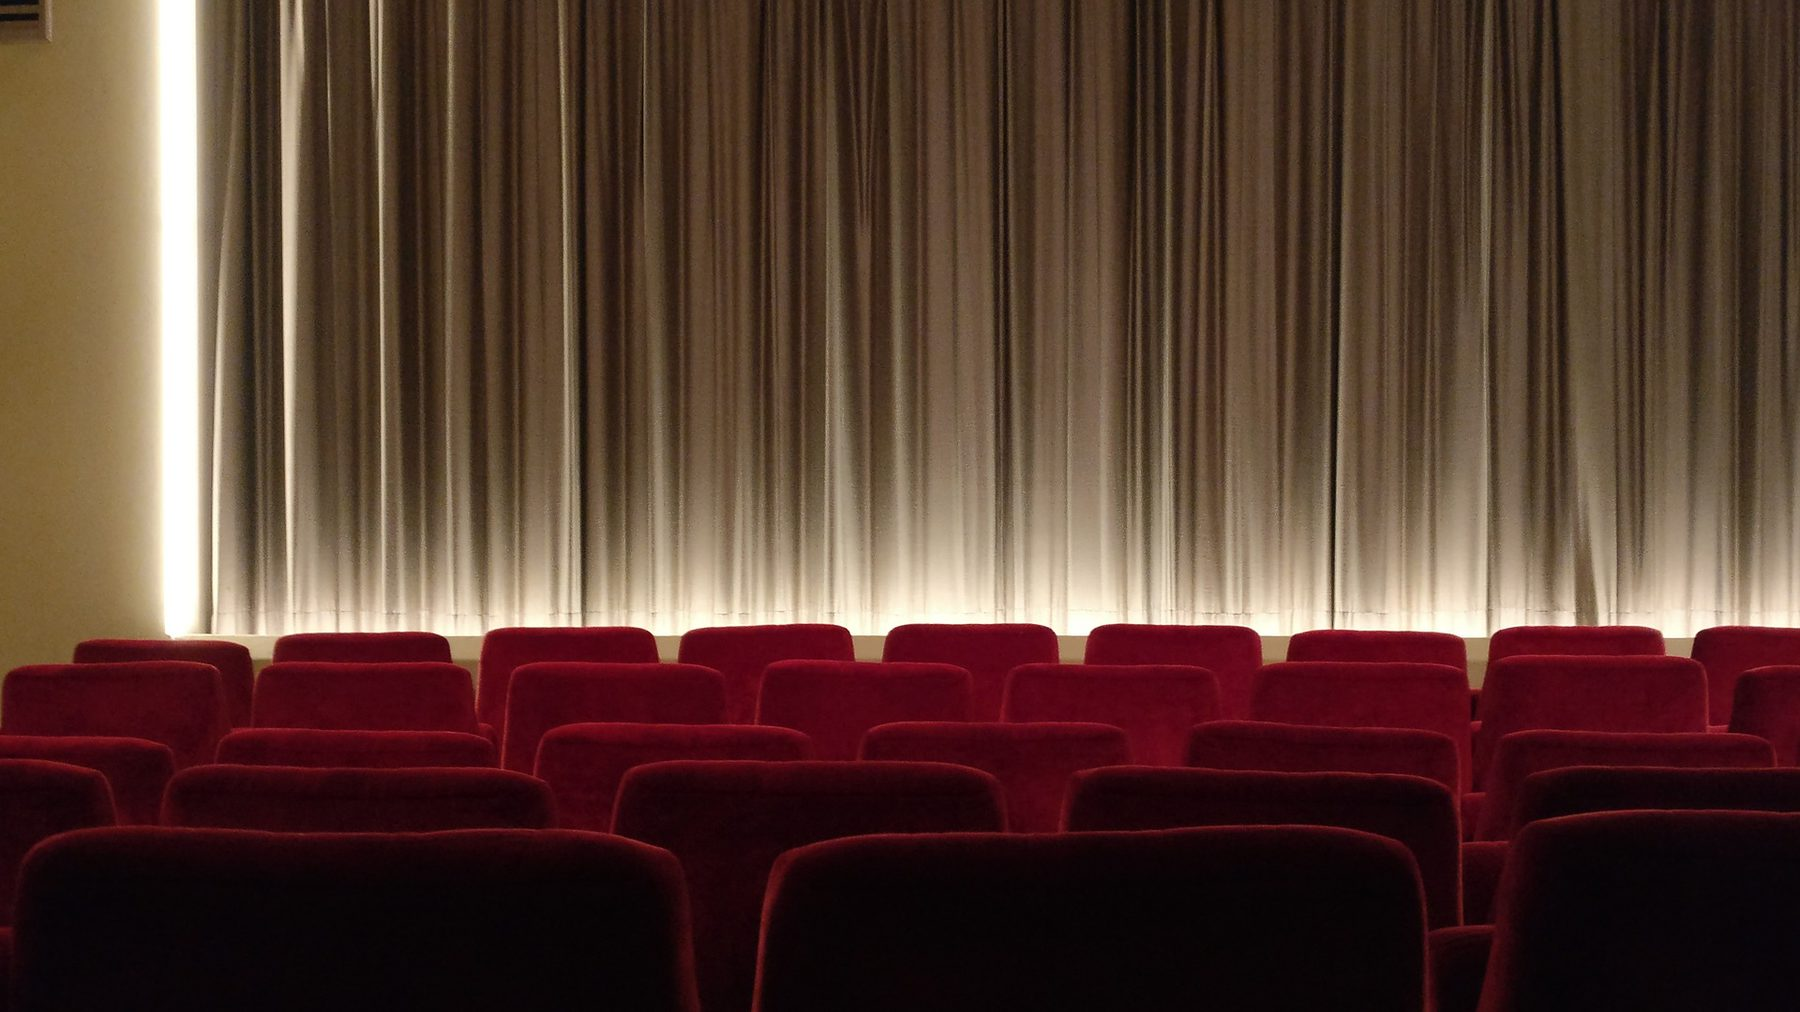 Sector Image (Leisure: Cinema Seats and Curtain)